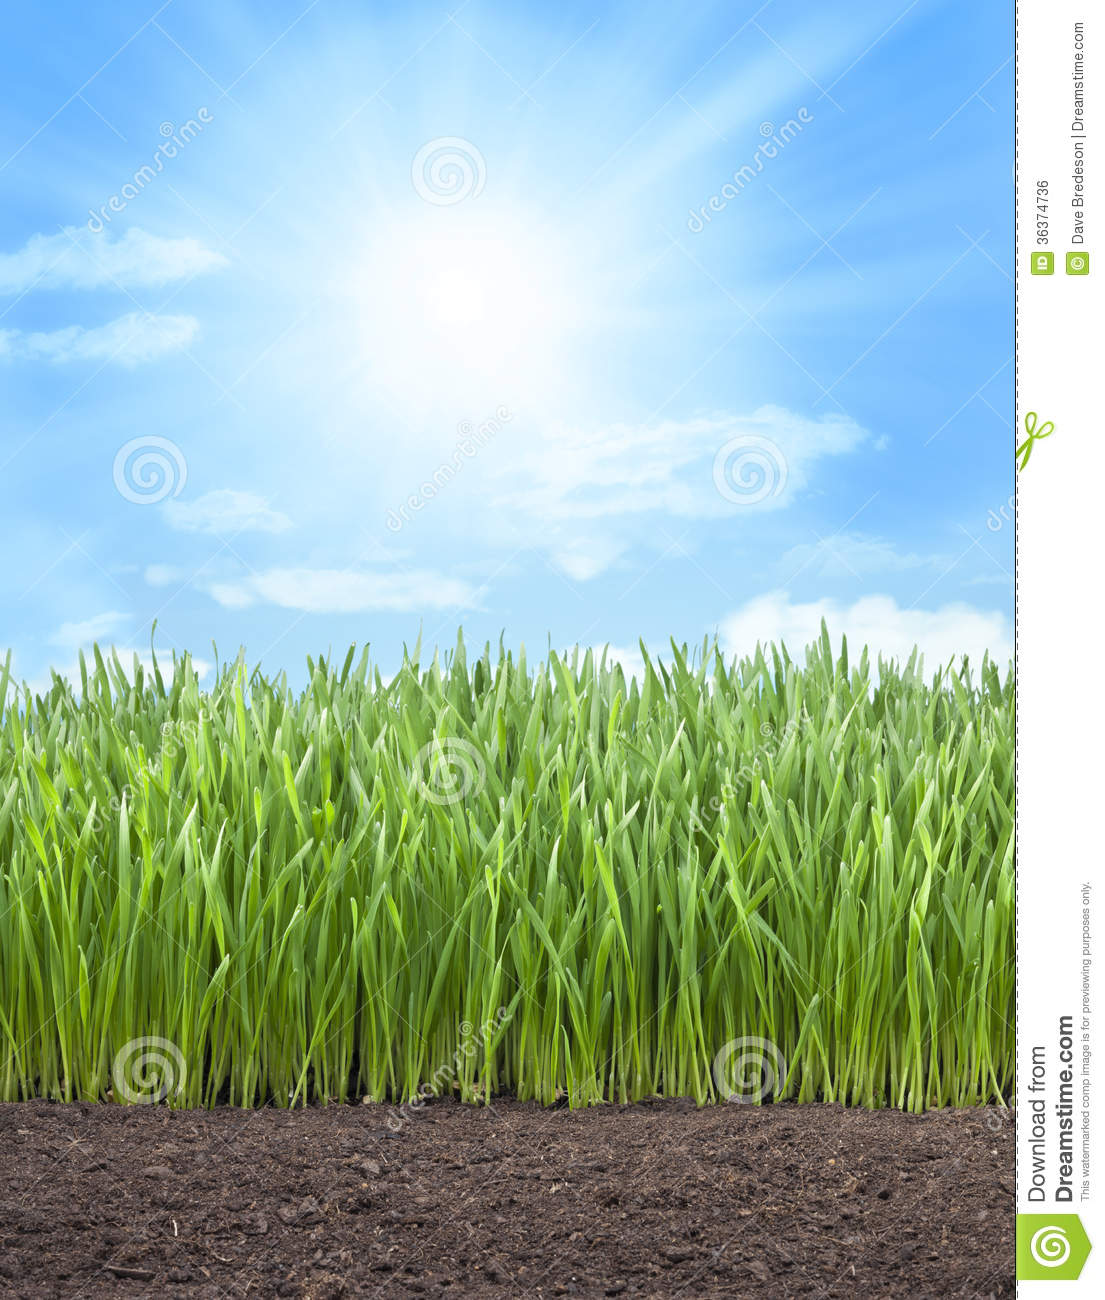 Wheat Field Grass Sun Sky Royalty Free Stock Image - Image ...